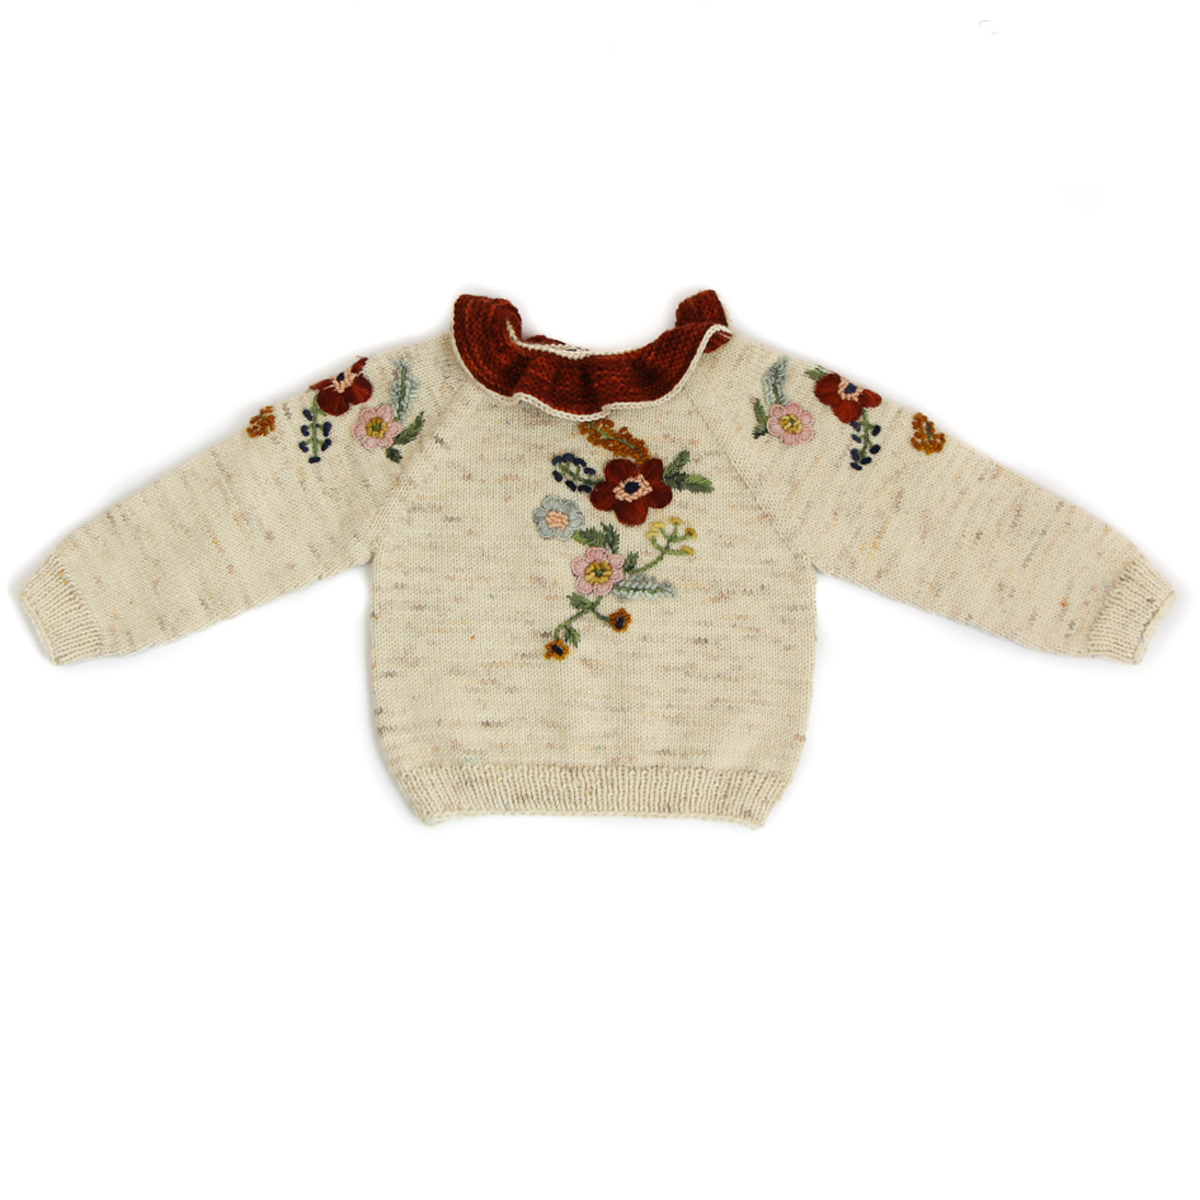 Kalinka Stephanie Sweater in Natural with maroon